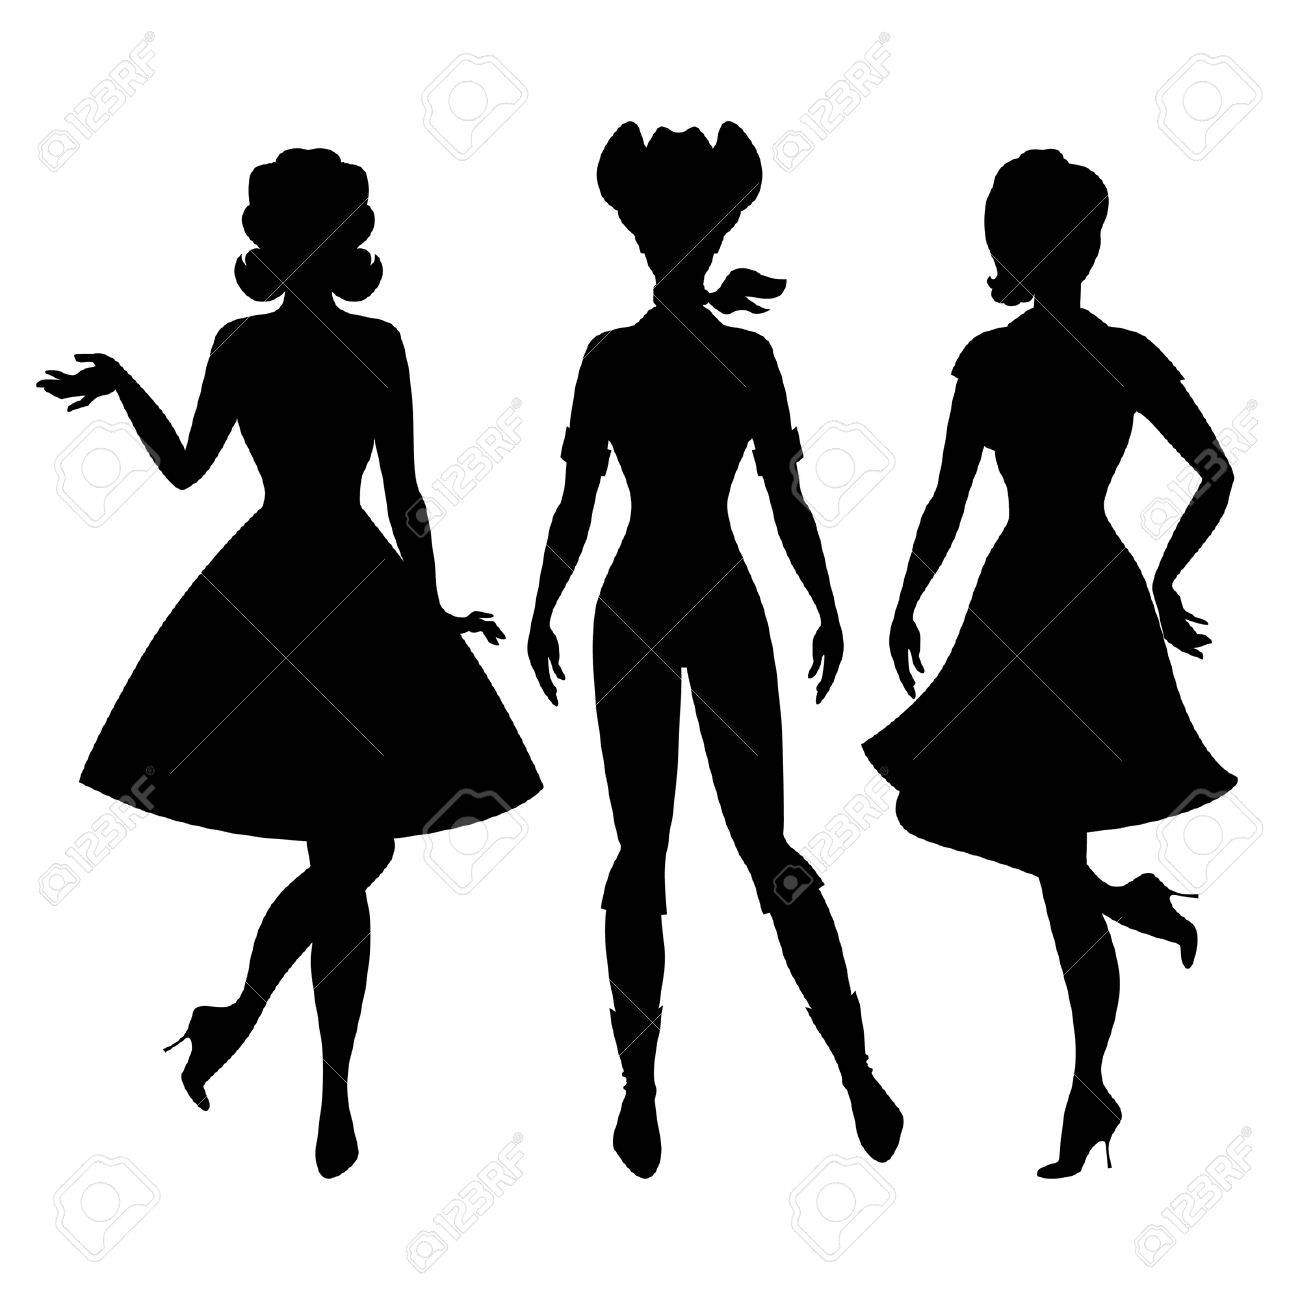 1300x1300 Silhouettes Of Beautiful Pin Up Girls 1950s Style. Royalty Free